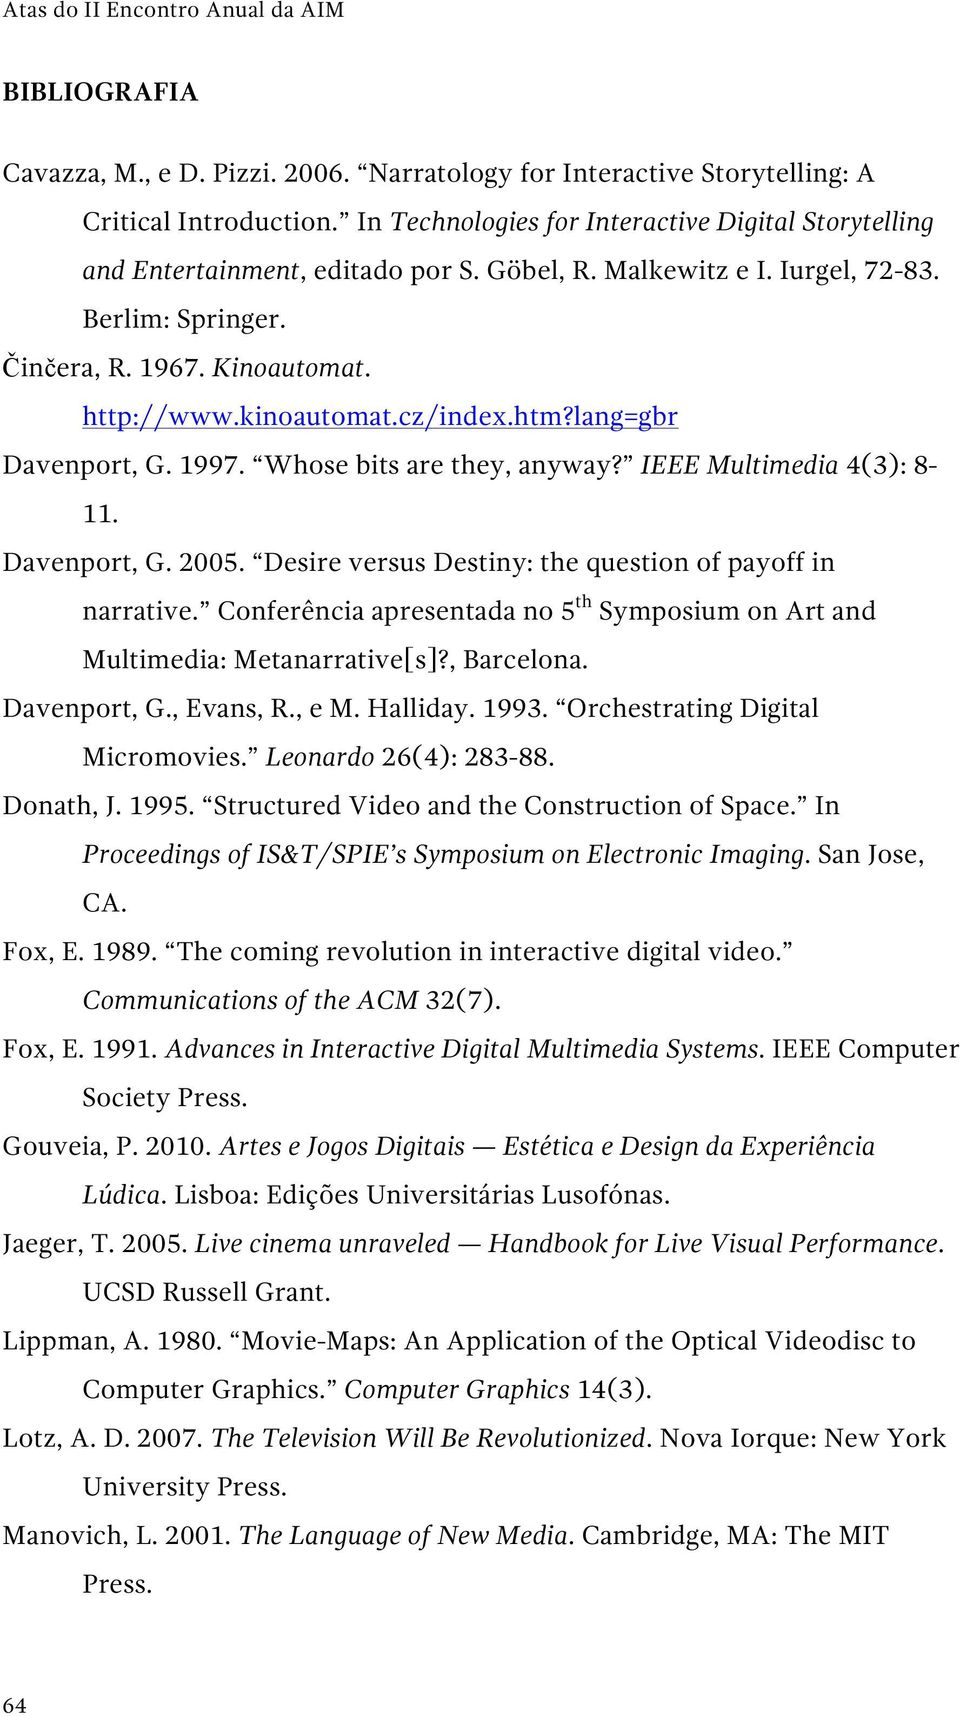 cz/index.htm?lang=gbr Davenport, G. 1997. Whose bits are they, anyway? IEEE Multimedia 4(3): 8-11. Davenport, G. 2005. Desire versus Destiny: the question of payoff in narrative.